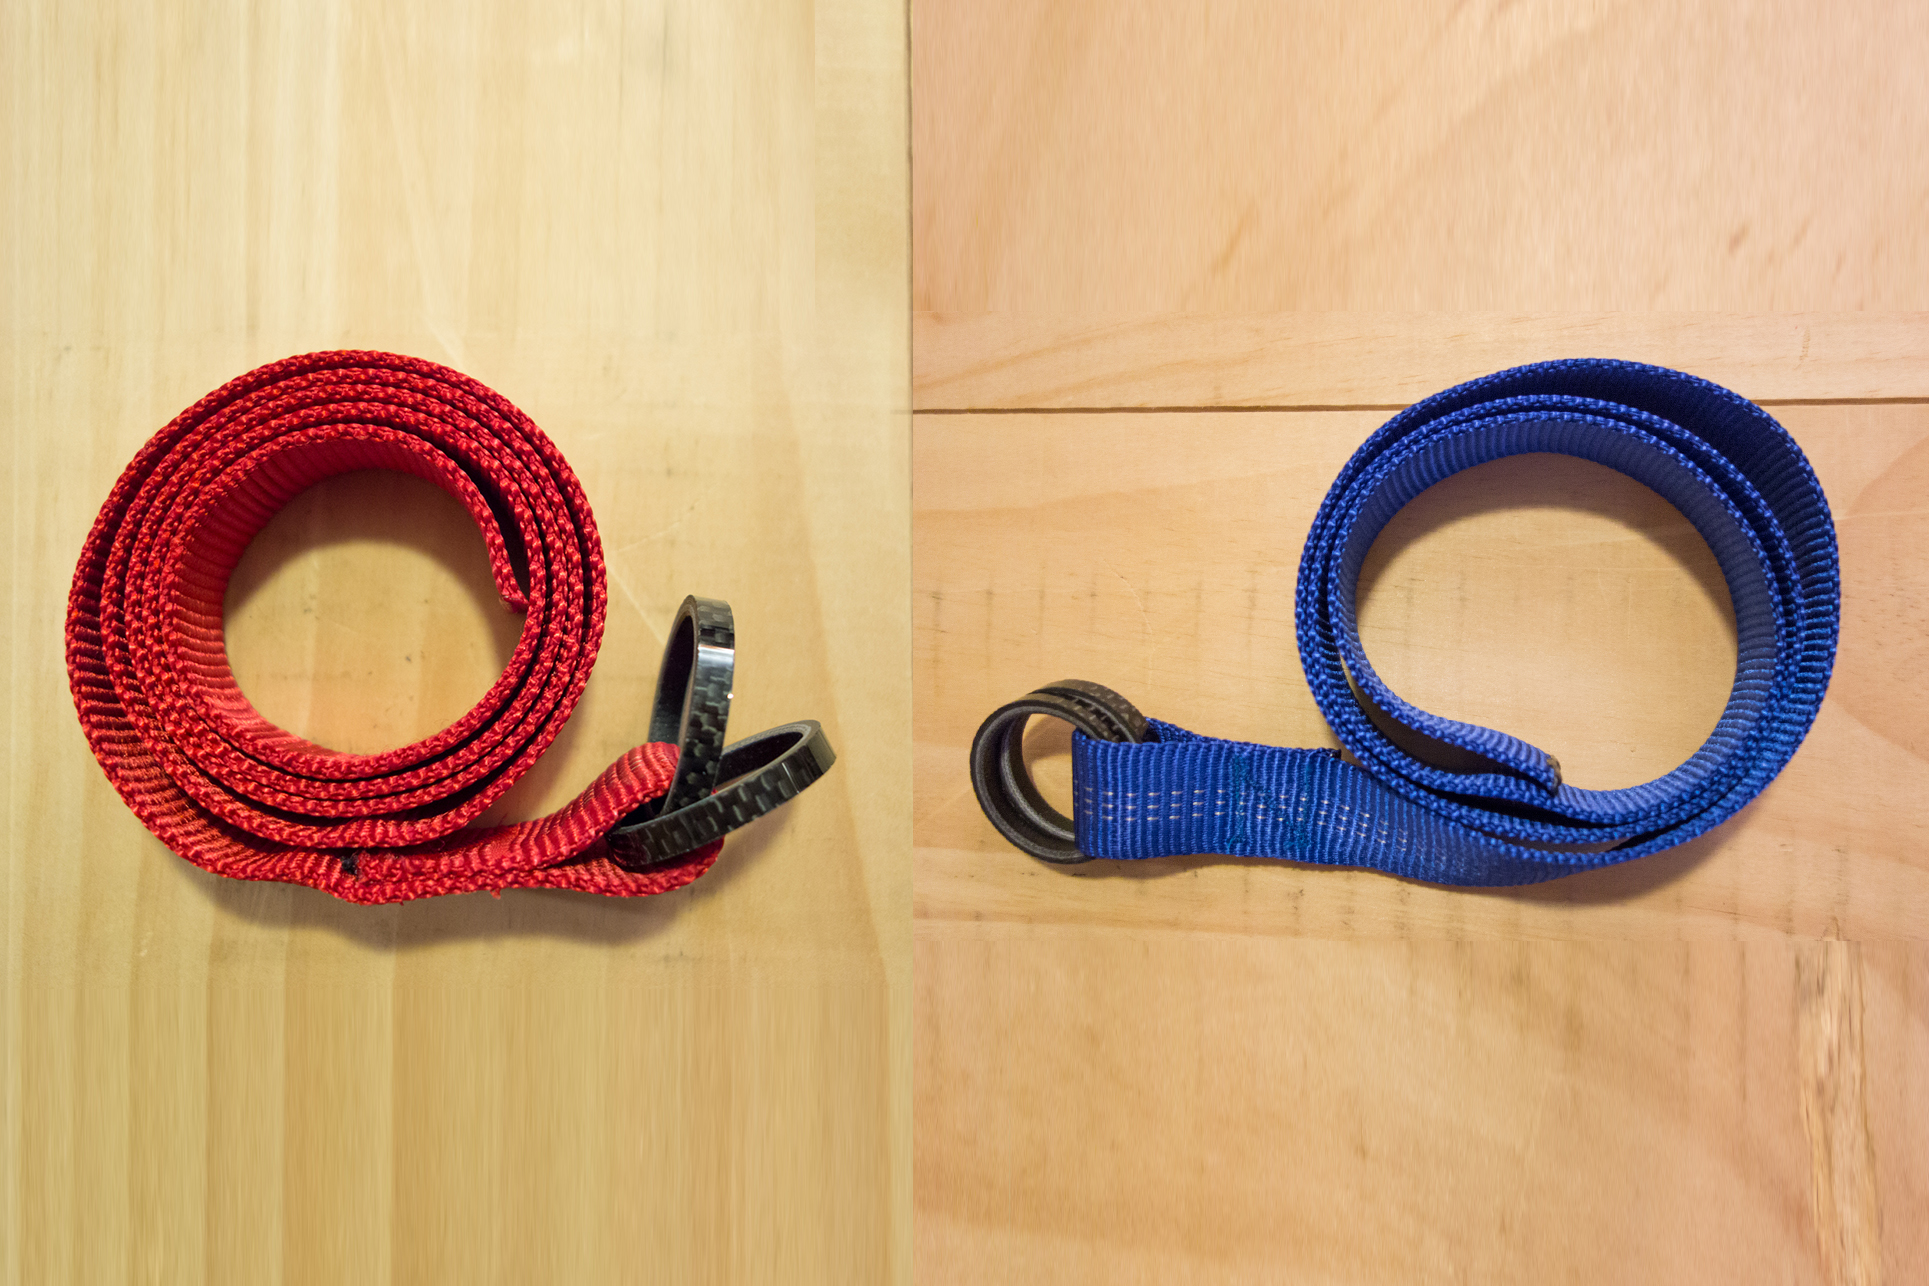 Carbon bike headset spacer belt in blue and red